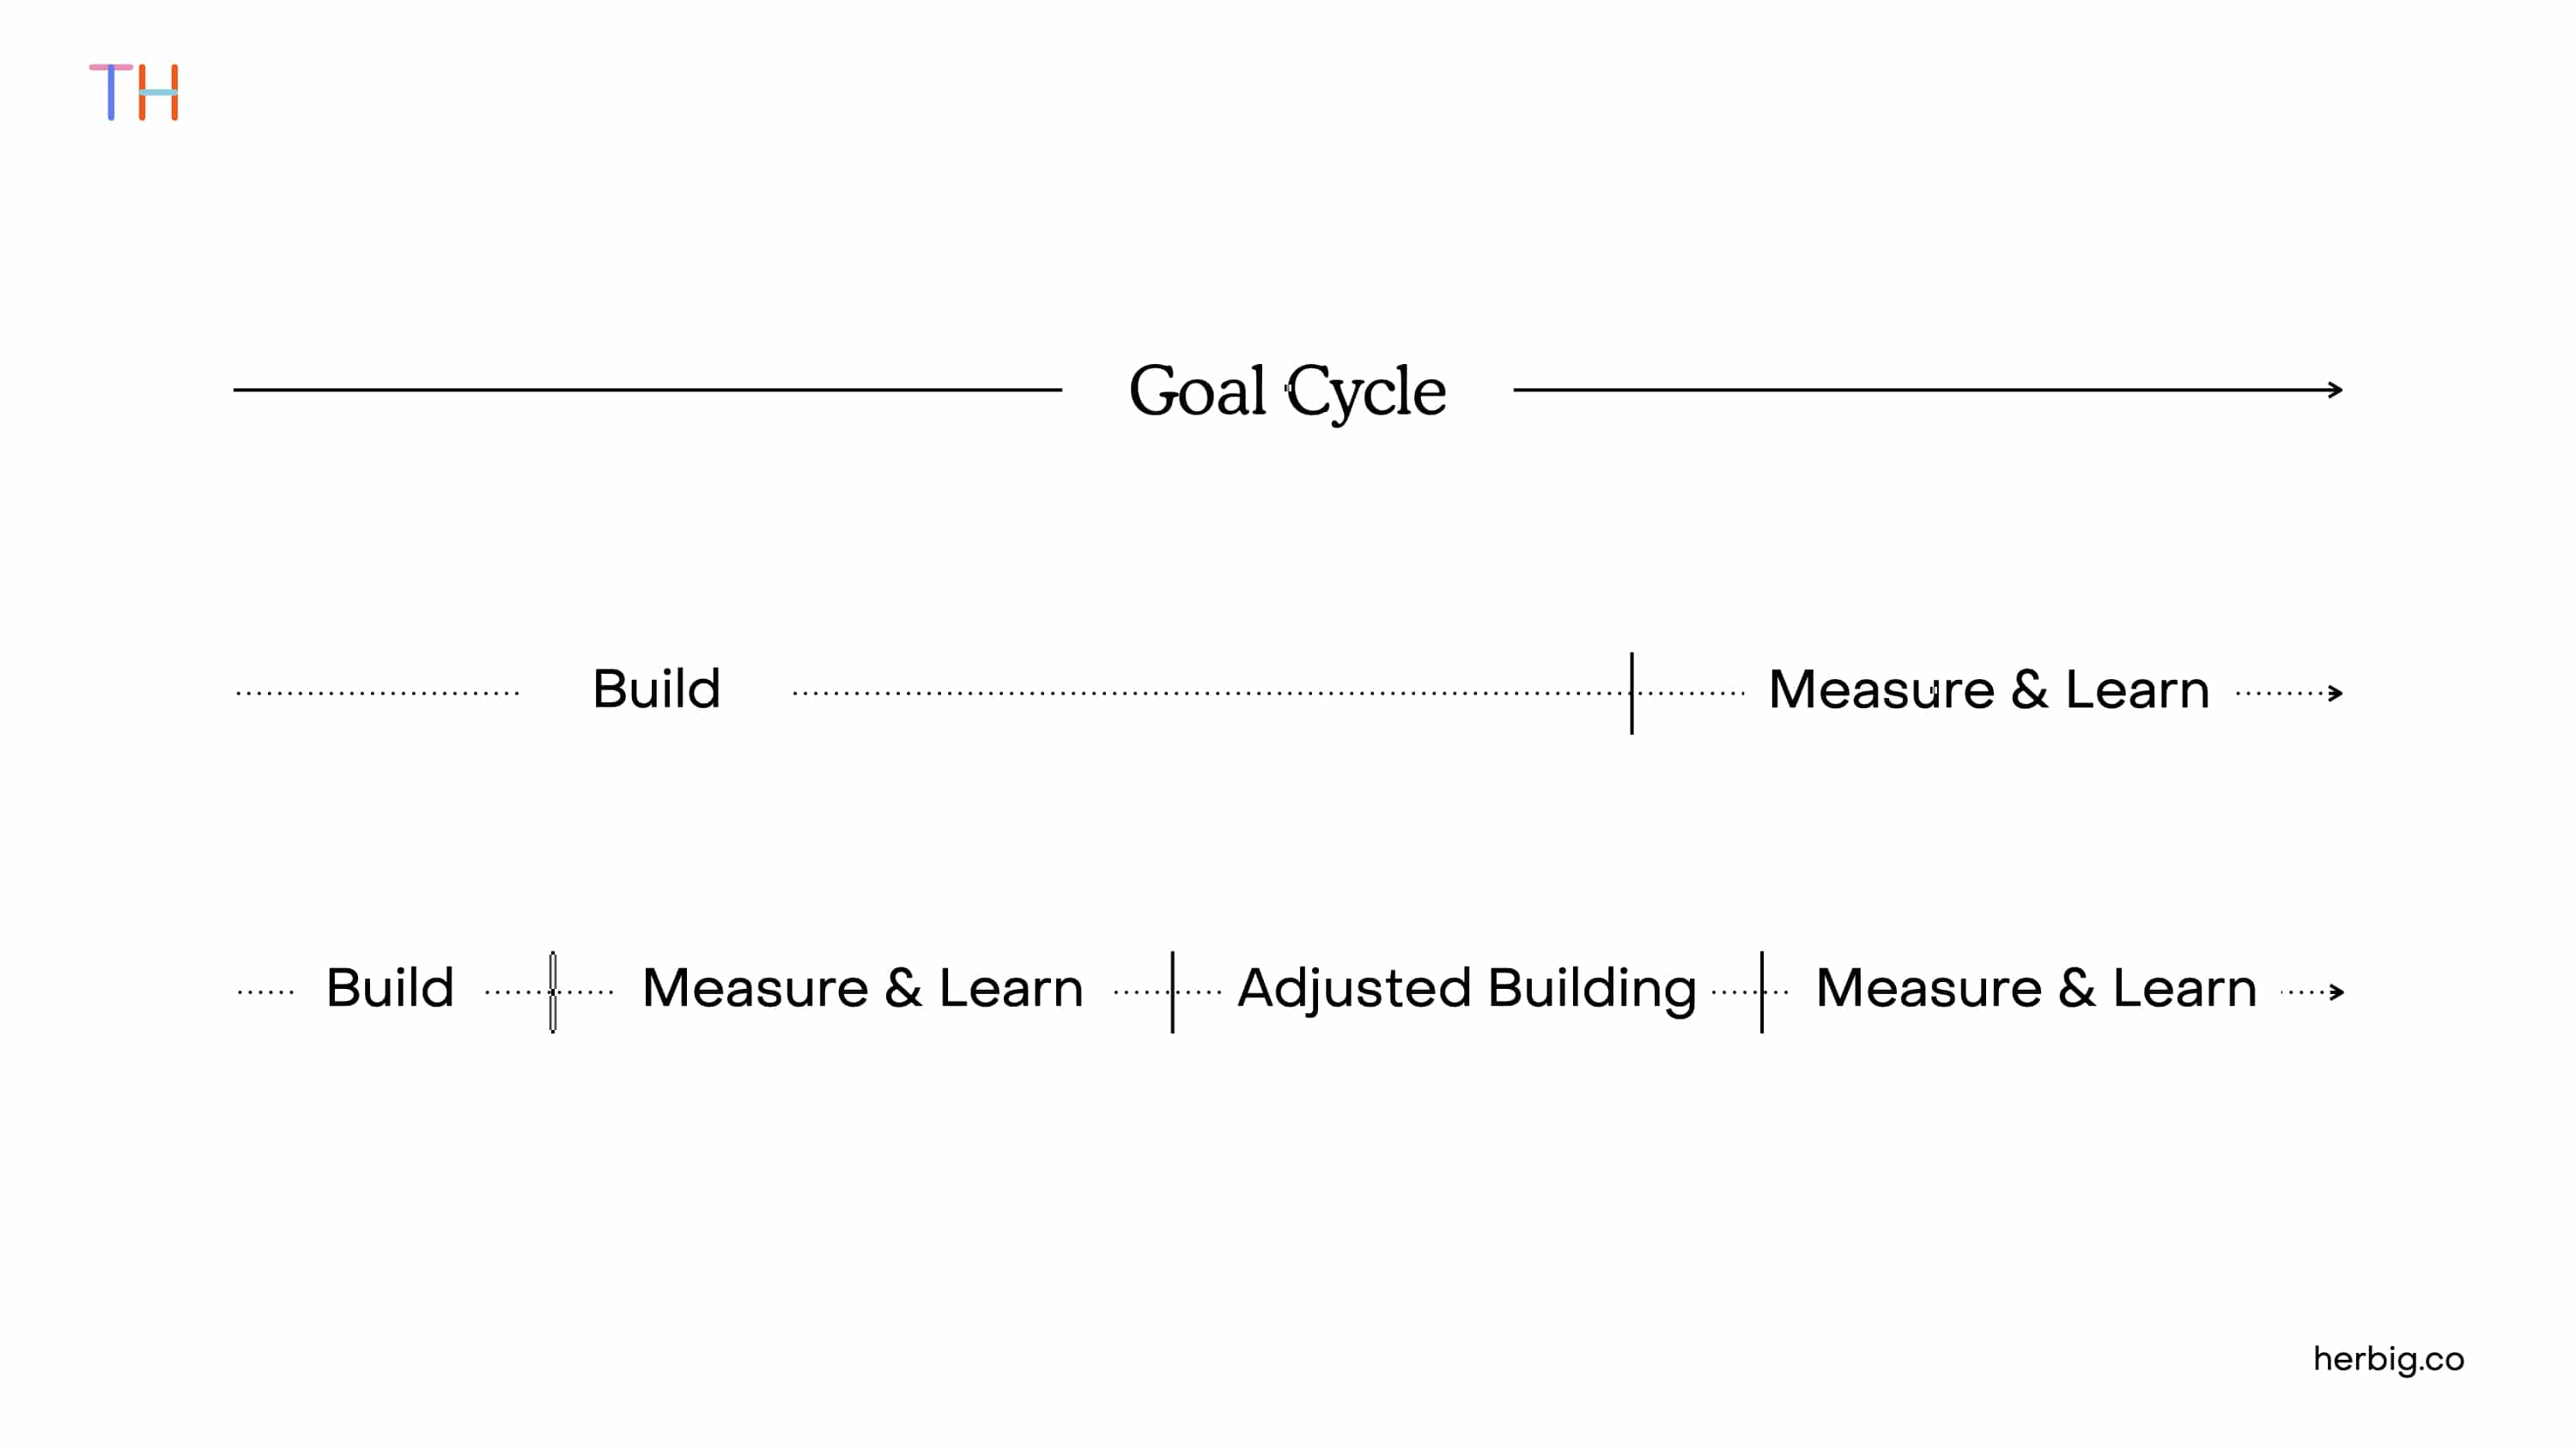 Build-Measure-Learn Cycle of Product Goals